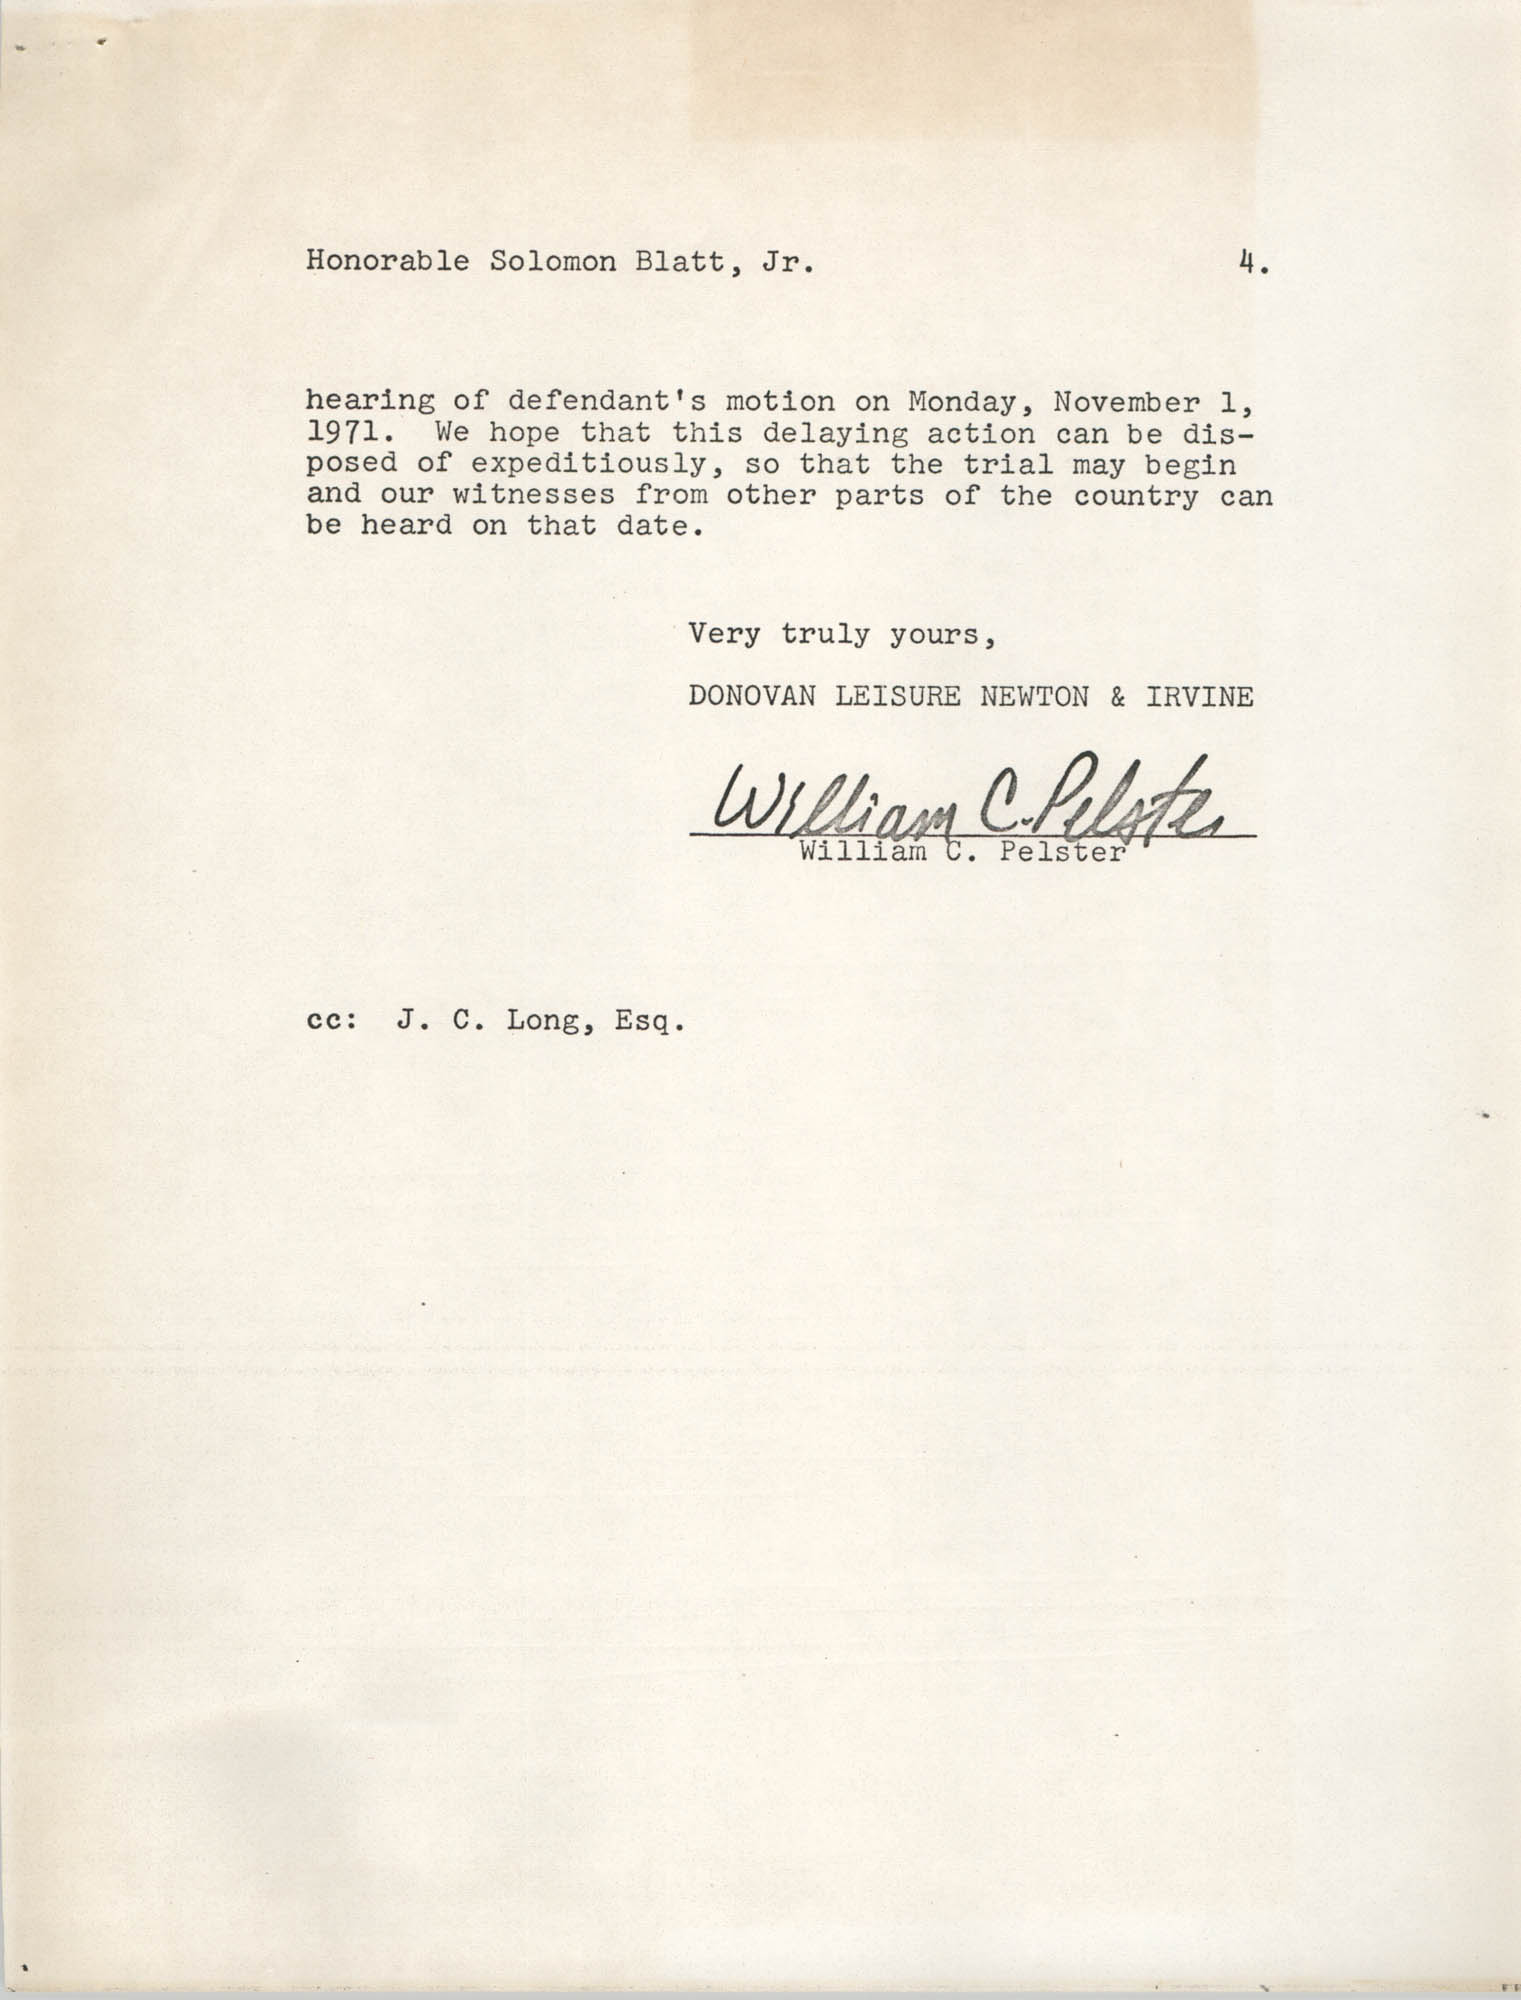 Letter from William C. Pelster to Honorable Solomon Blatt, Jr., October 29, 1971, Page 4